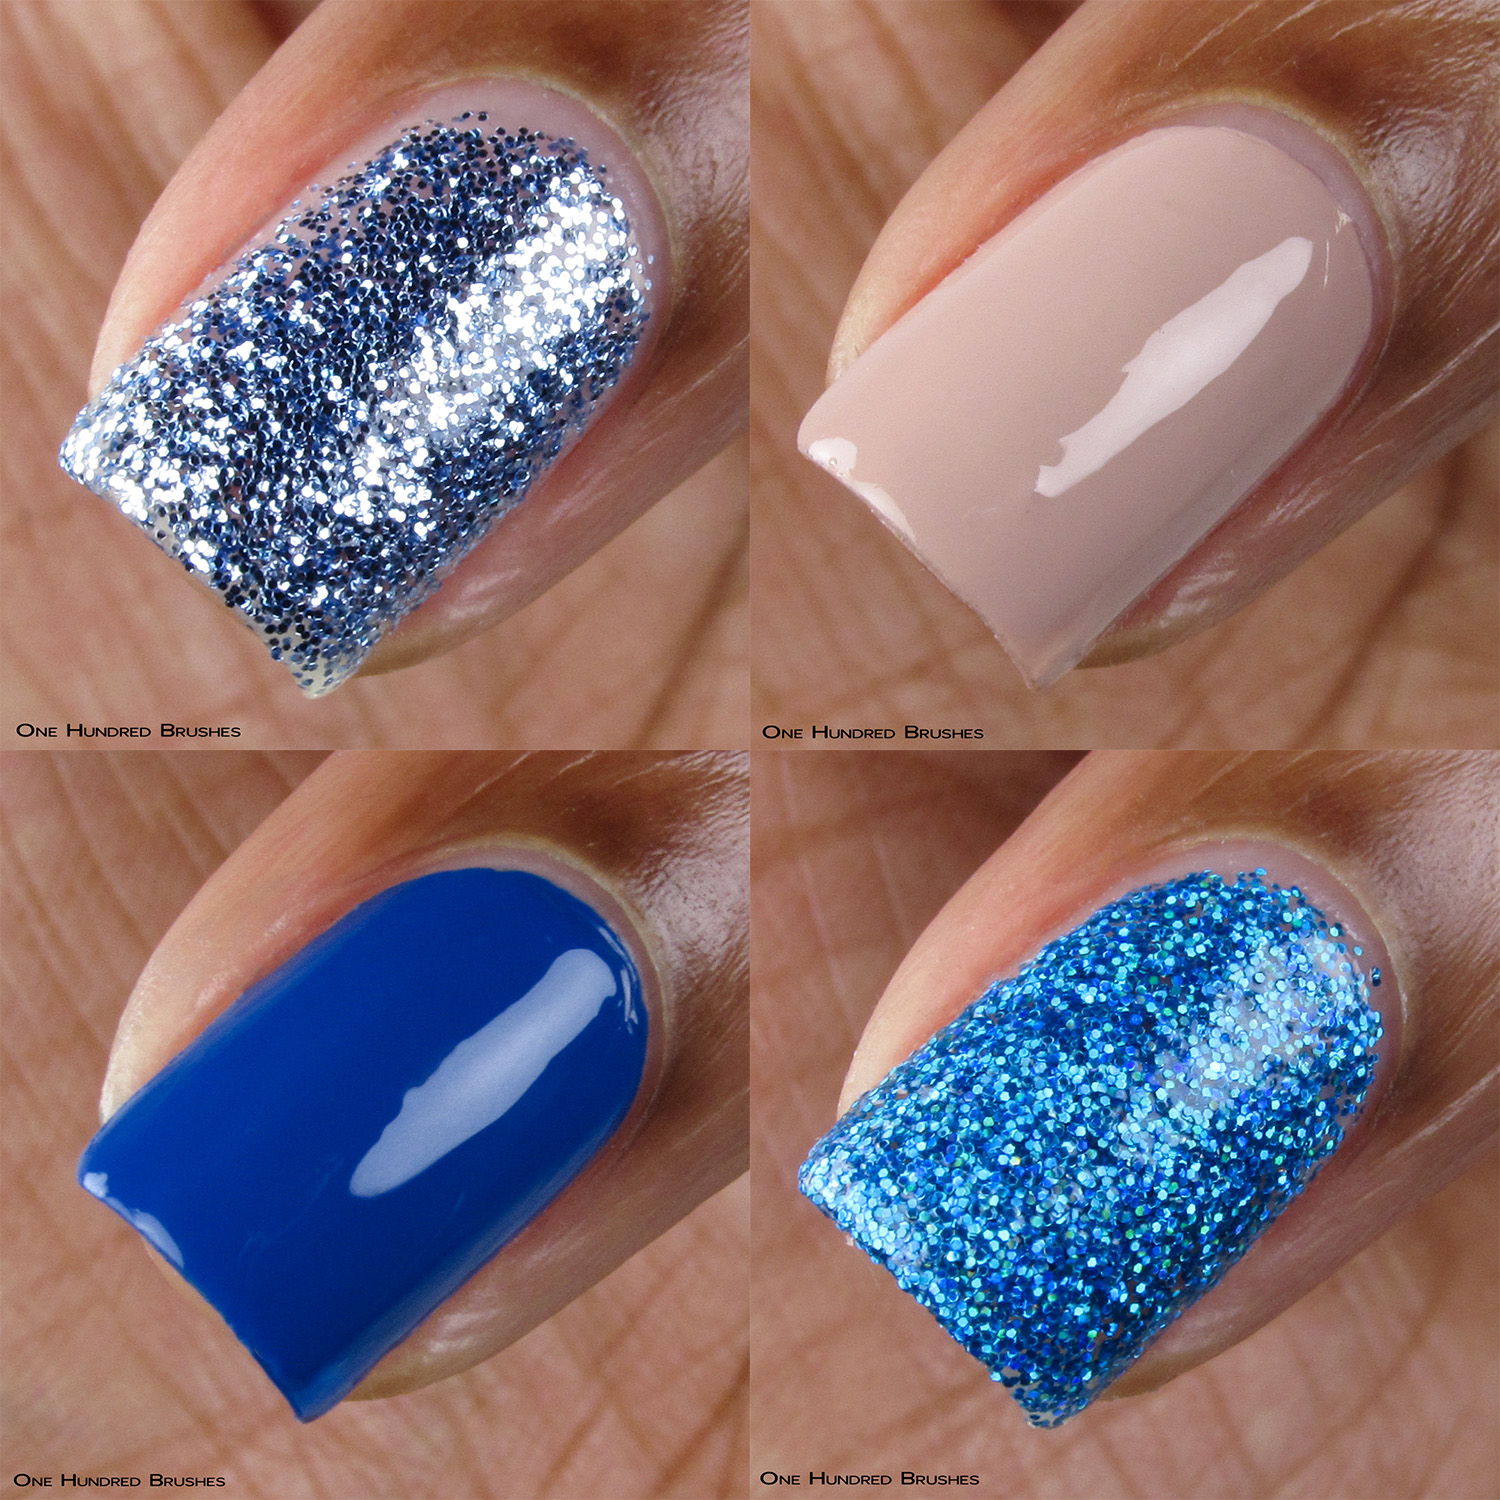 Dimension Nails January 2019 - Macro collage